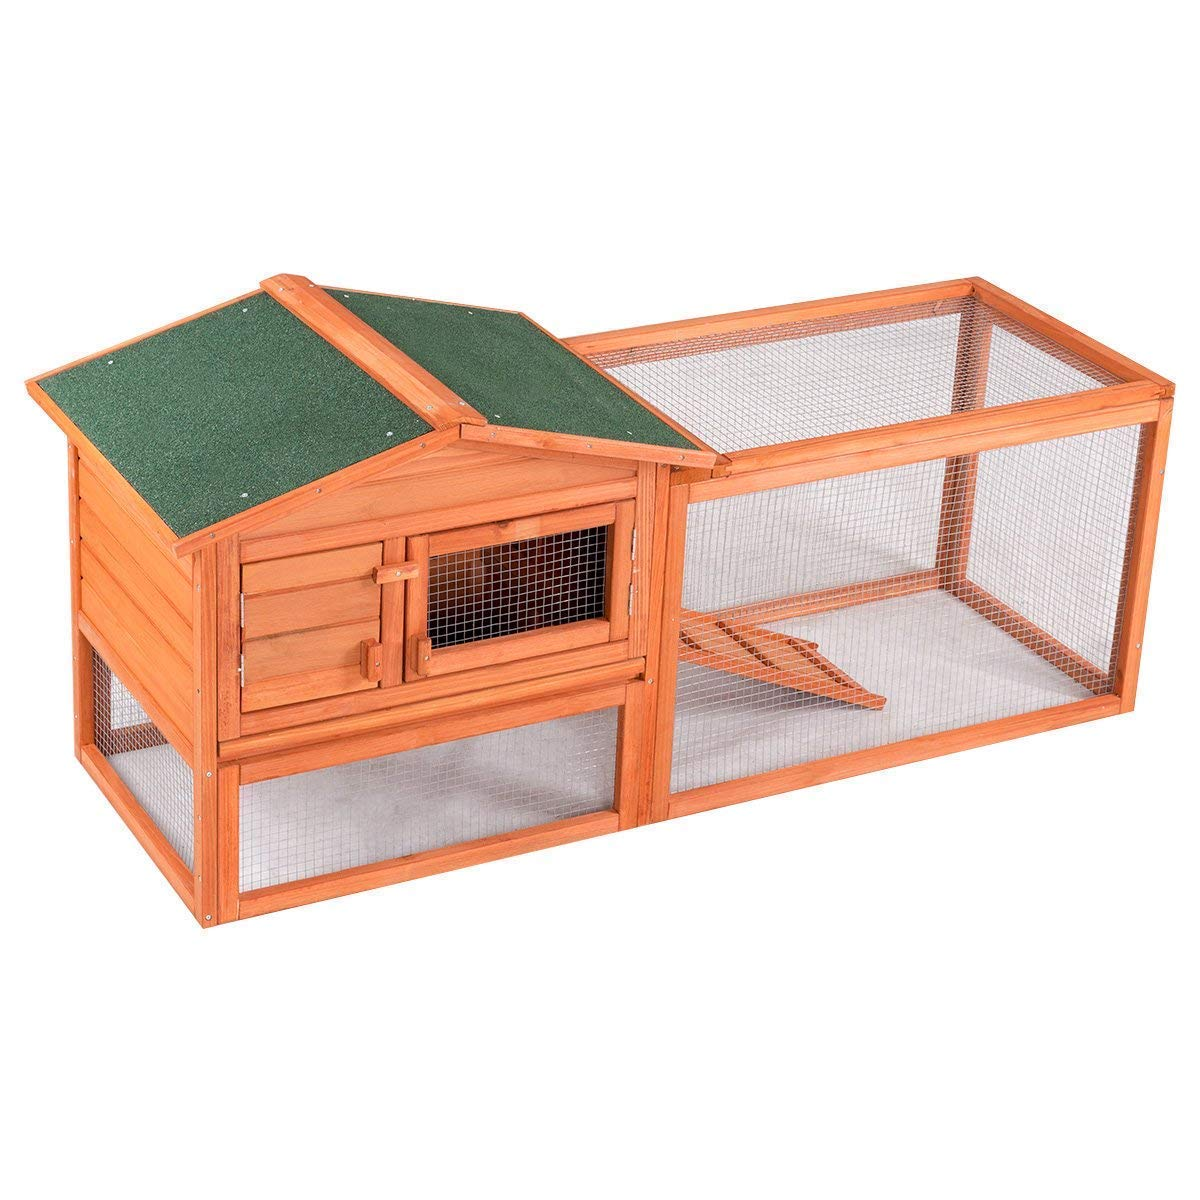 Tangkula Chicken Coop Outdoor Wooden Chicken Coop Garden Backyard Farm Bunny Hen House Rabbit Hutch Small Animal Cage Pet Supplies for Chicken, Duck, Rabbit, etc (61.5'' x 20.5'' x 27''(L x W x H)) by Tangkula (Image #5)